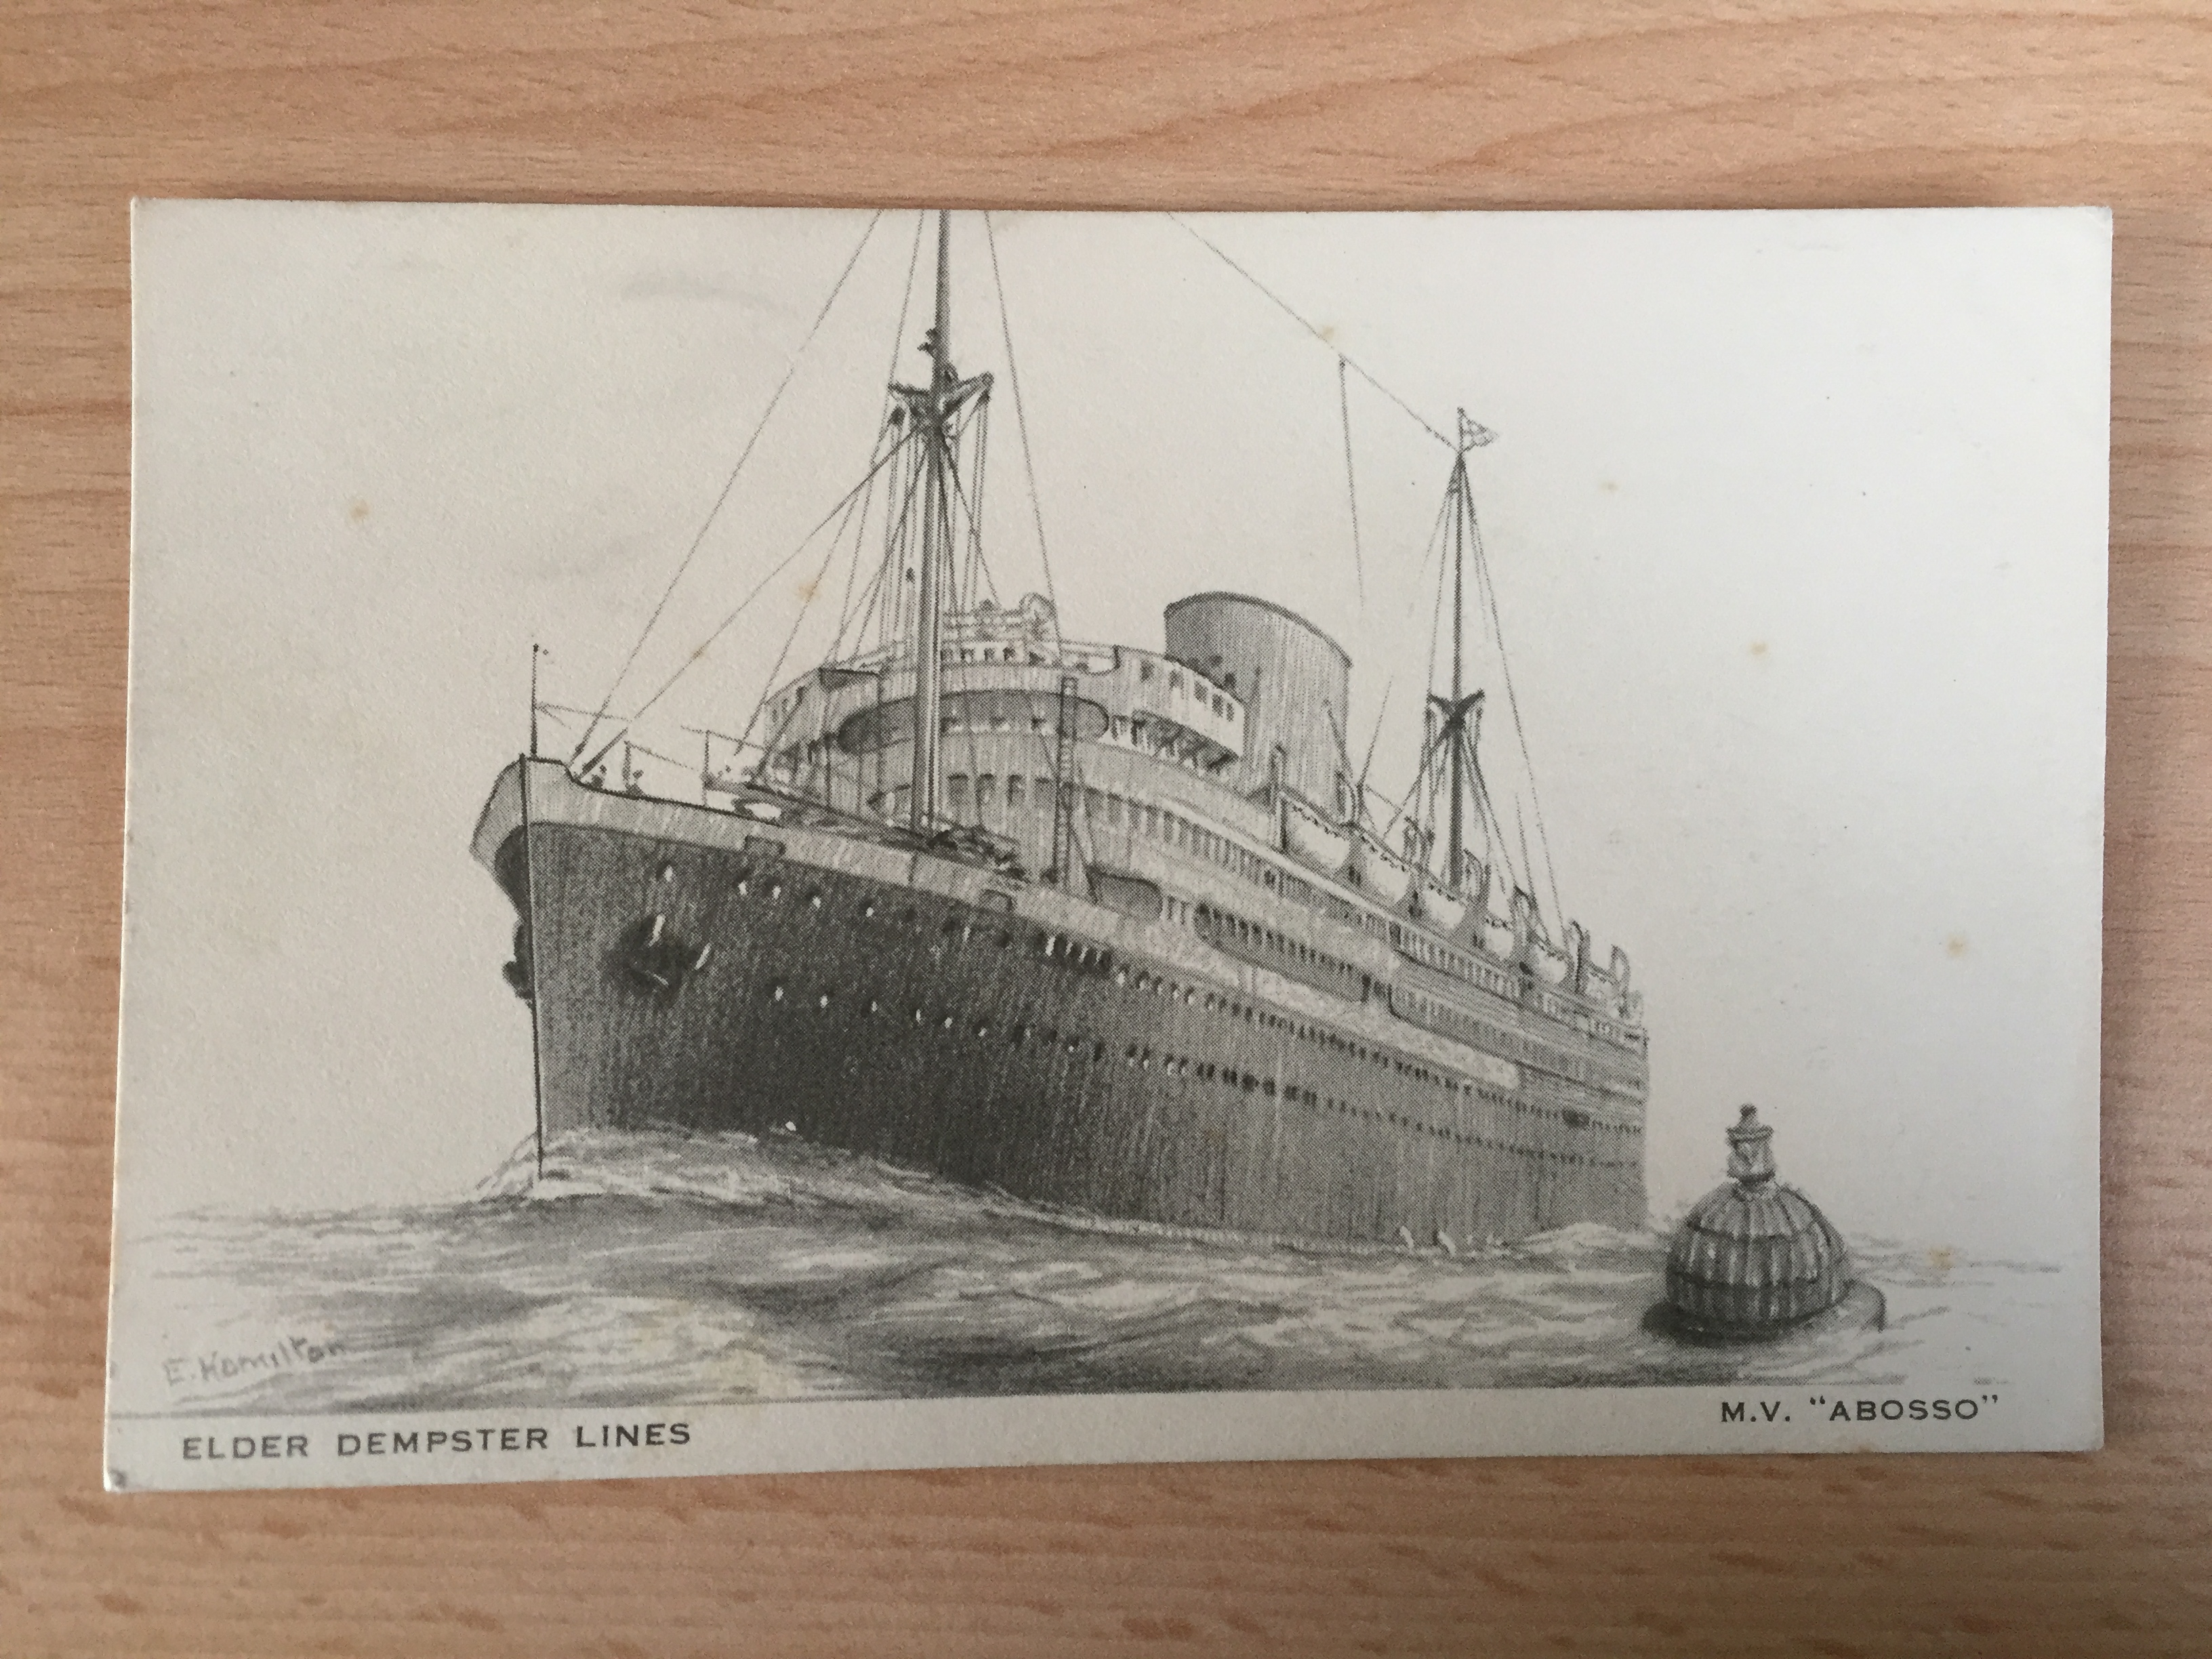 UNUSED VERY EARLY B/W POSTCARD FROM THE ELDER DEMPSTER LINE VESSEL THE ABOSSO